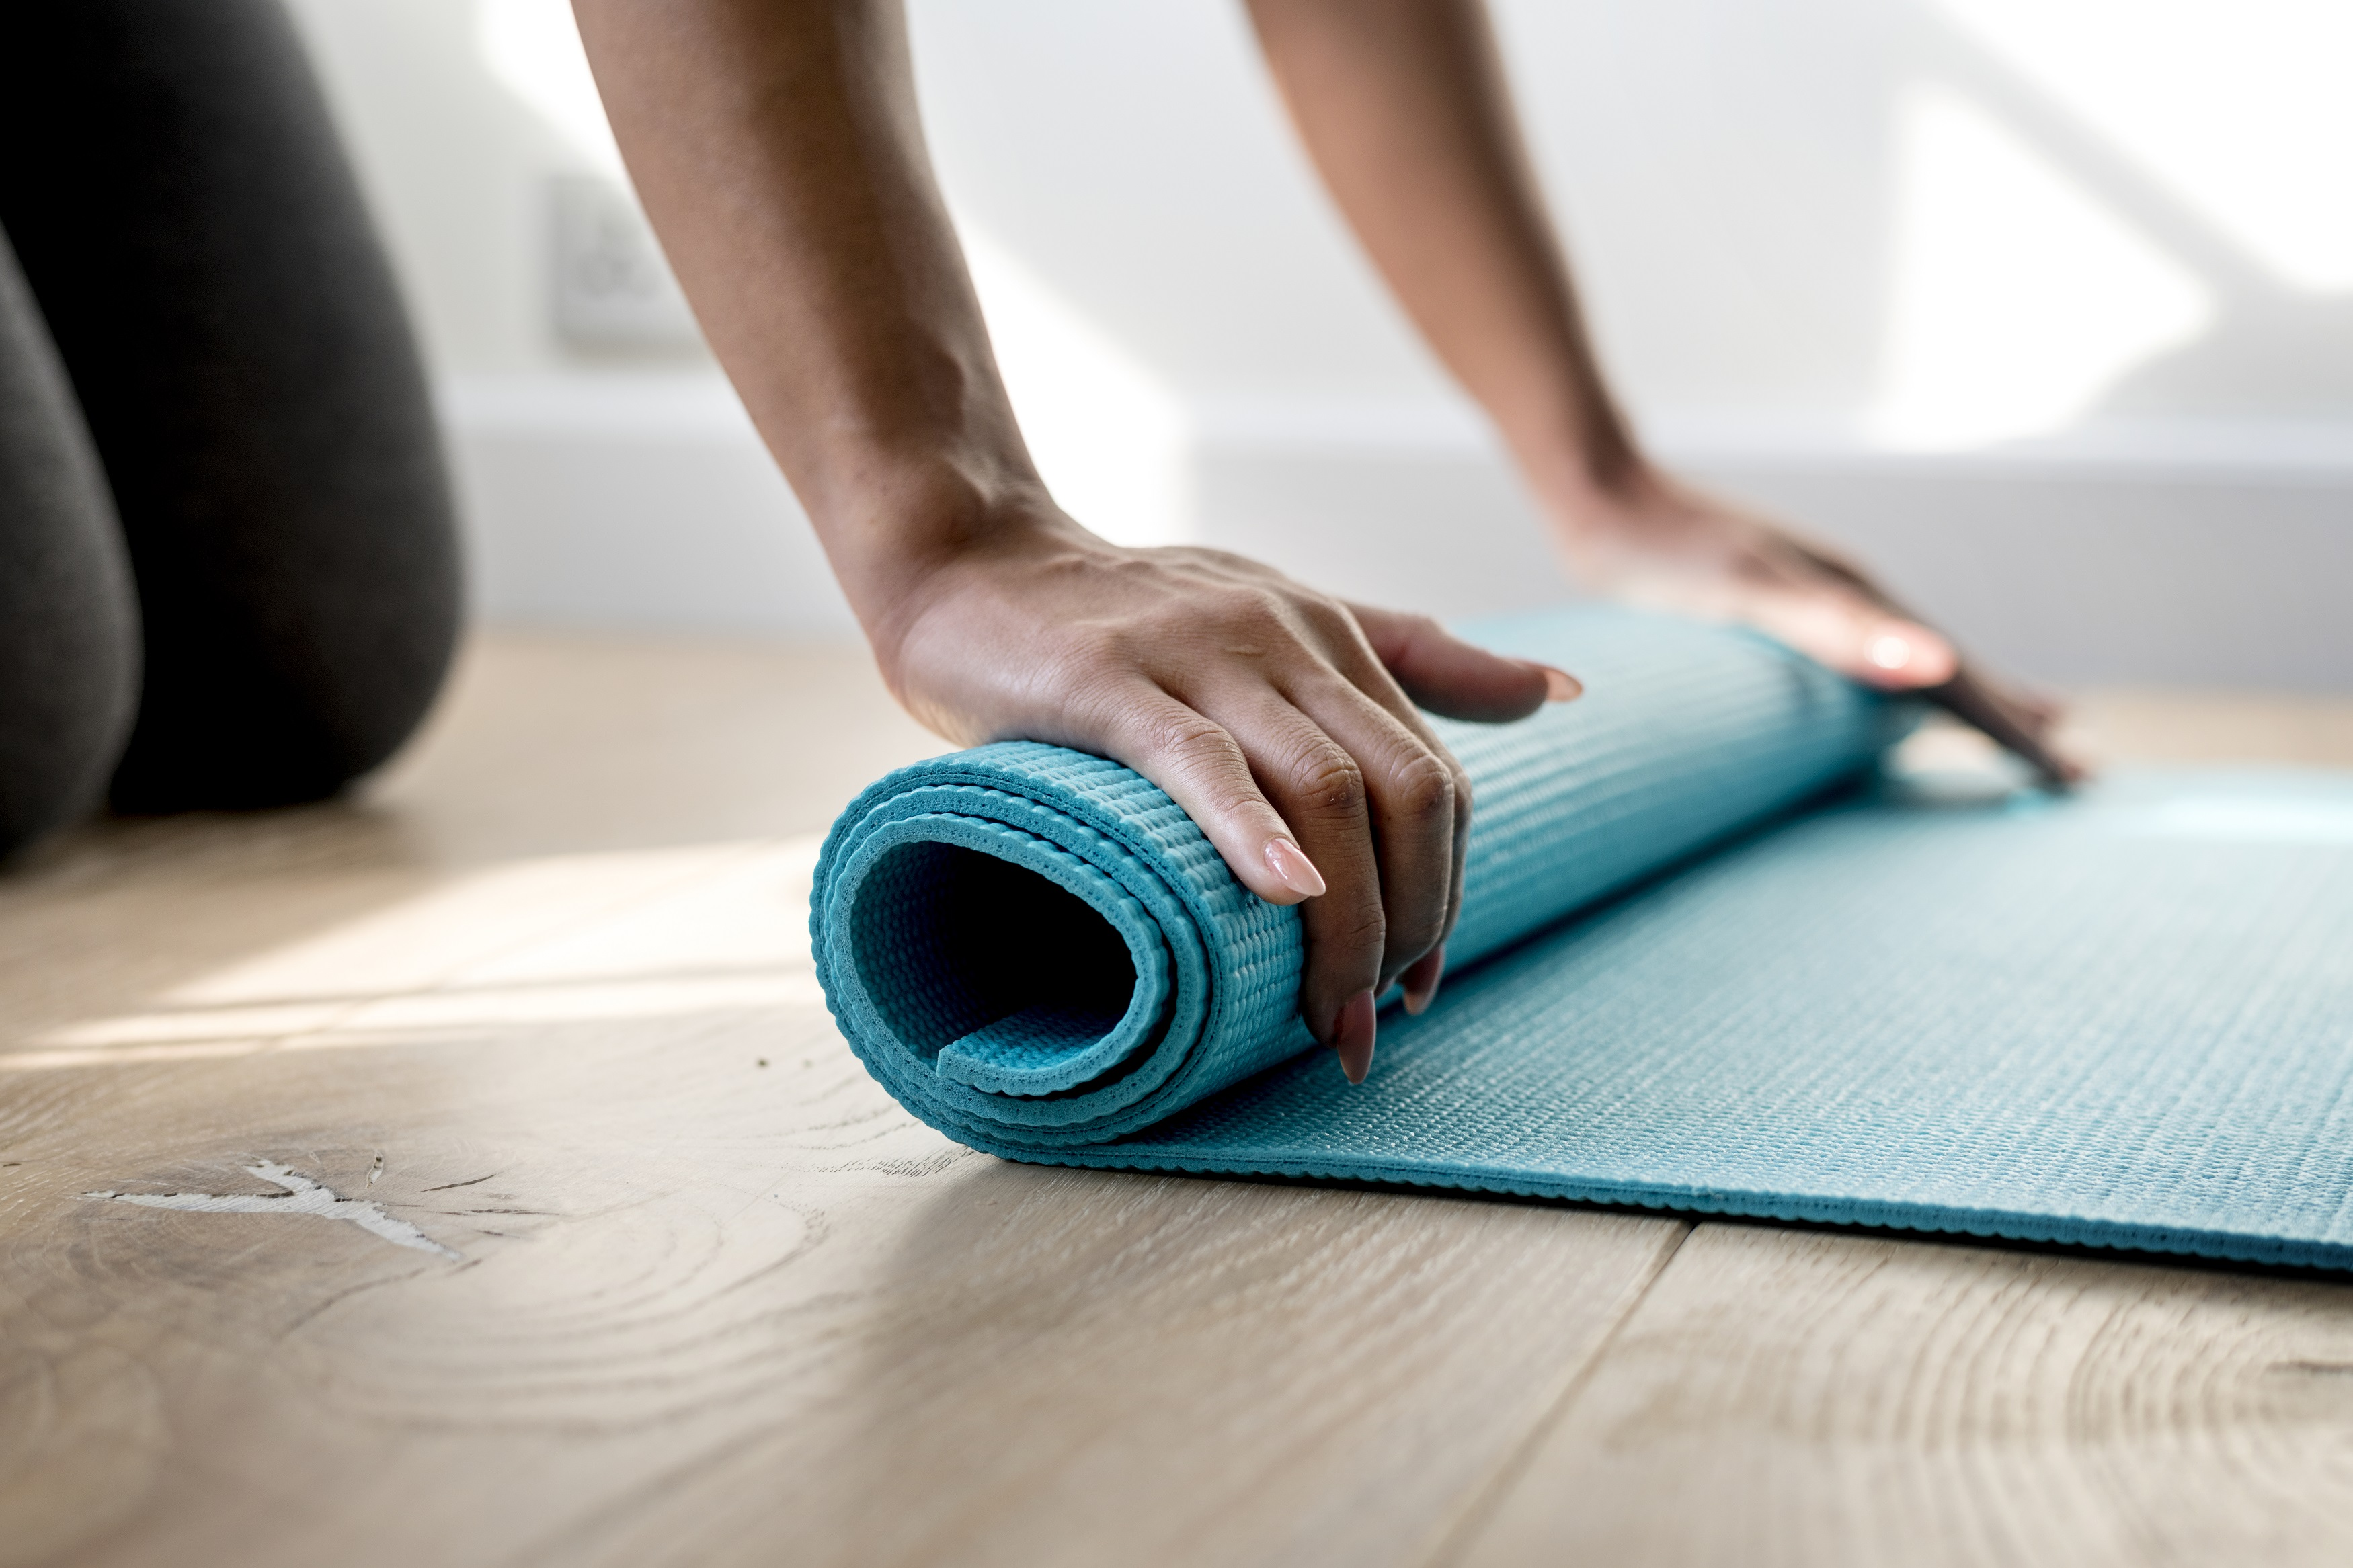 <a href='https://www.freepik.com/free-photo/woman-rolling-yoga-mat_2767710.htm'>Designed by Rawpixel.com</a>